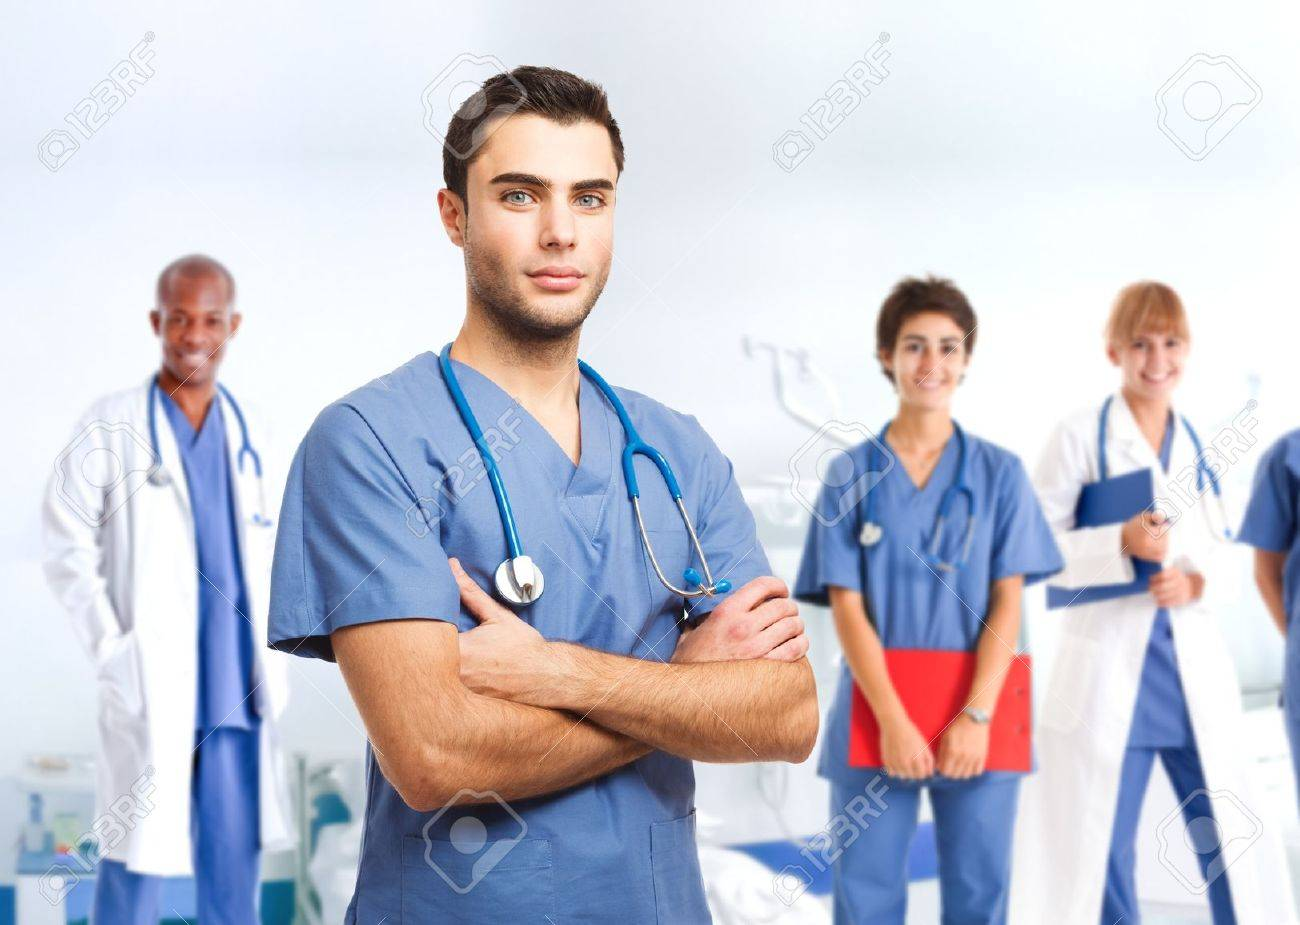 Portrait of an handsome doctor in front of his medical team Stock Photo - 17792264